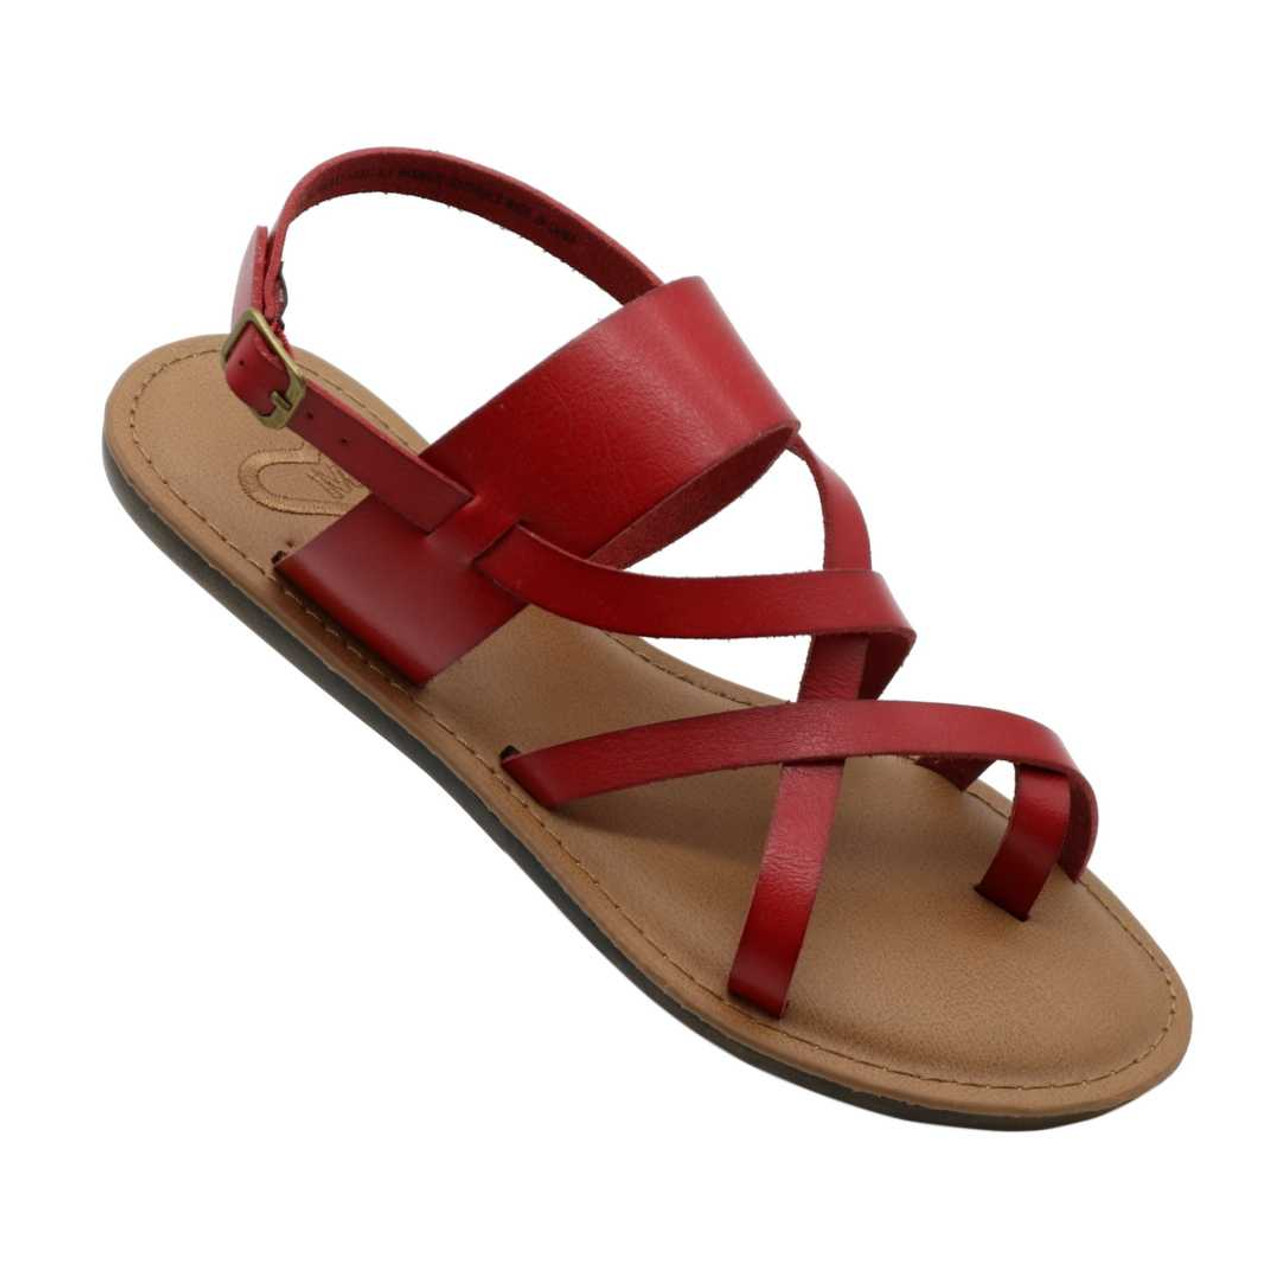 c0b335e57f84 Madeline Divania Sandal - Trendy Threads Inc